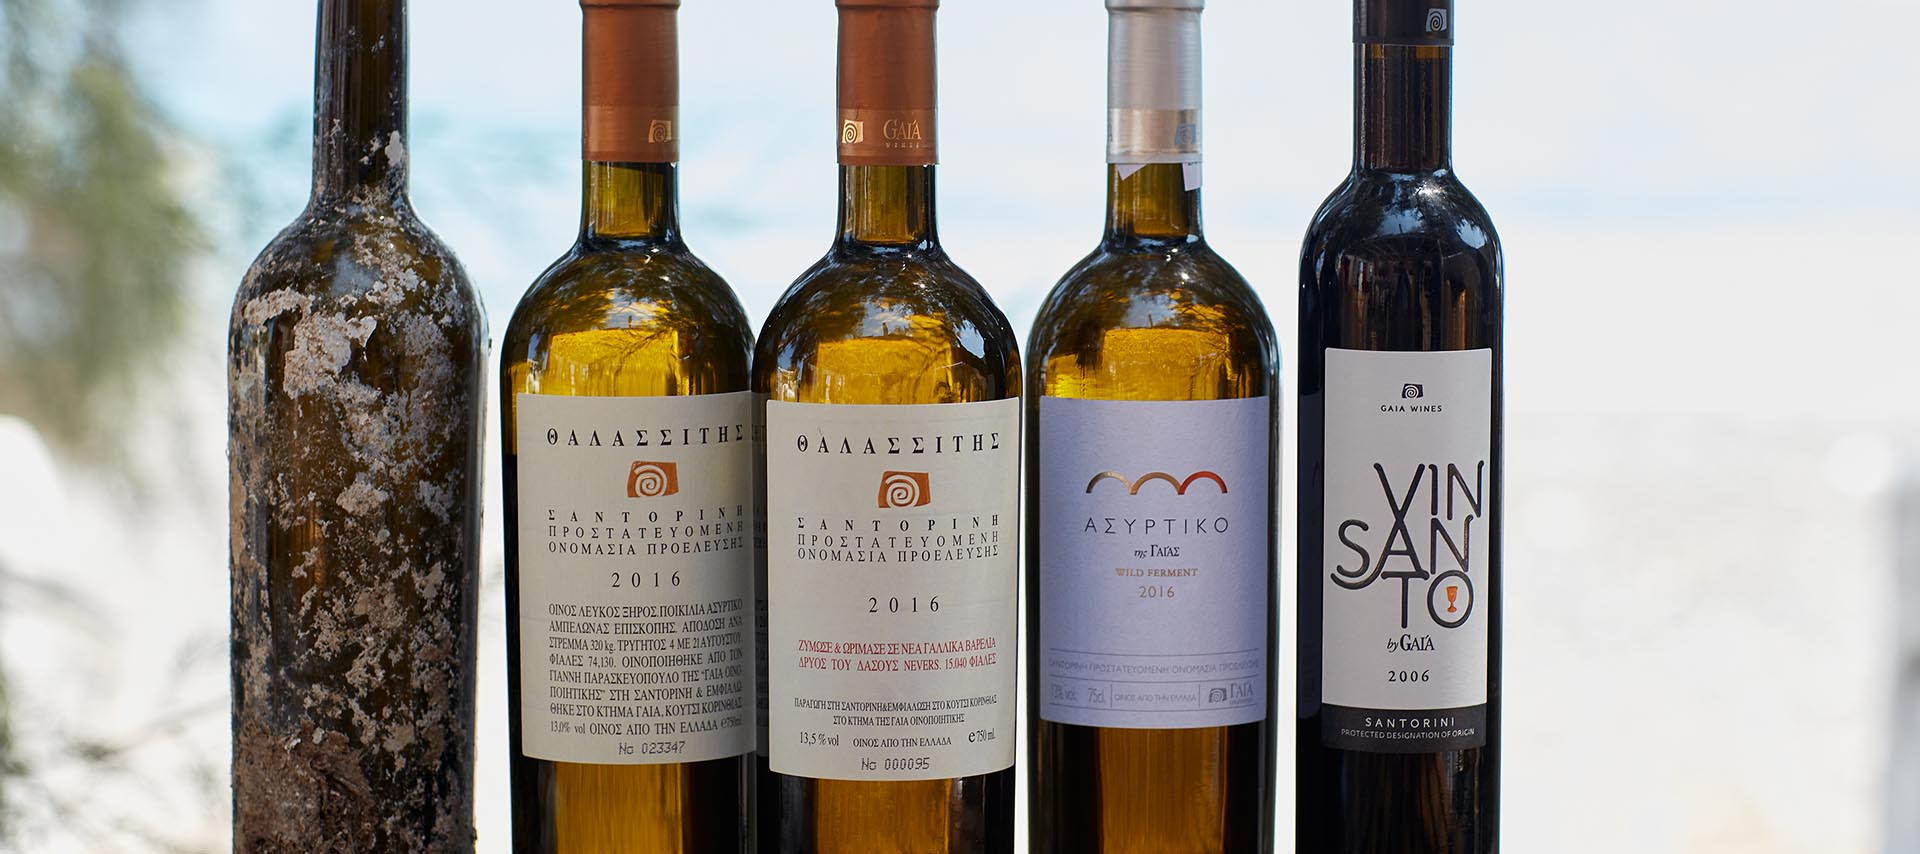 Thalassitis, Assyrtiko by Gaia  and  Vinsanto by Gaia  are only just a few of the wines produced by  Gaia Winery . Source: Gaia Winery